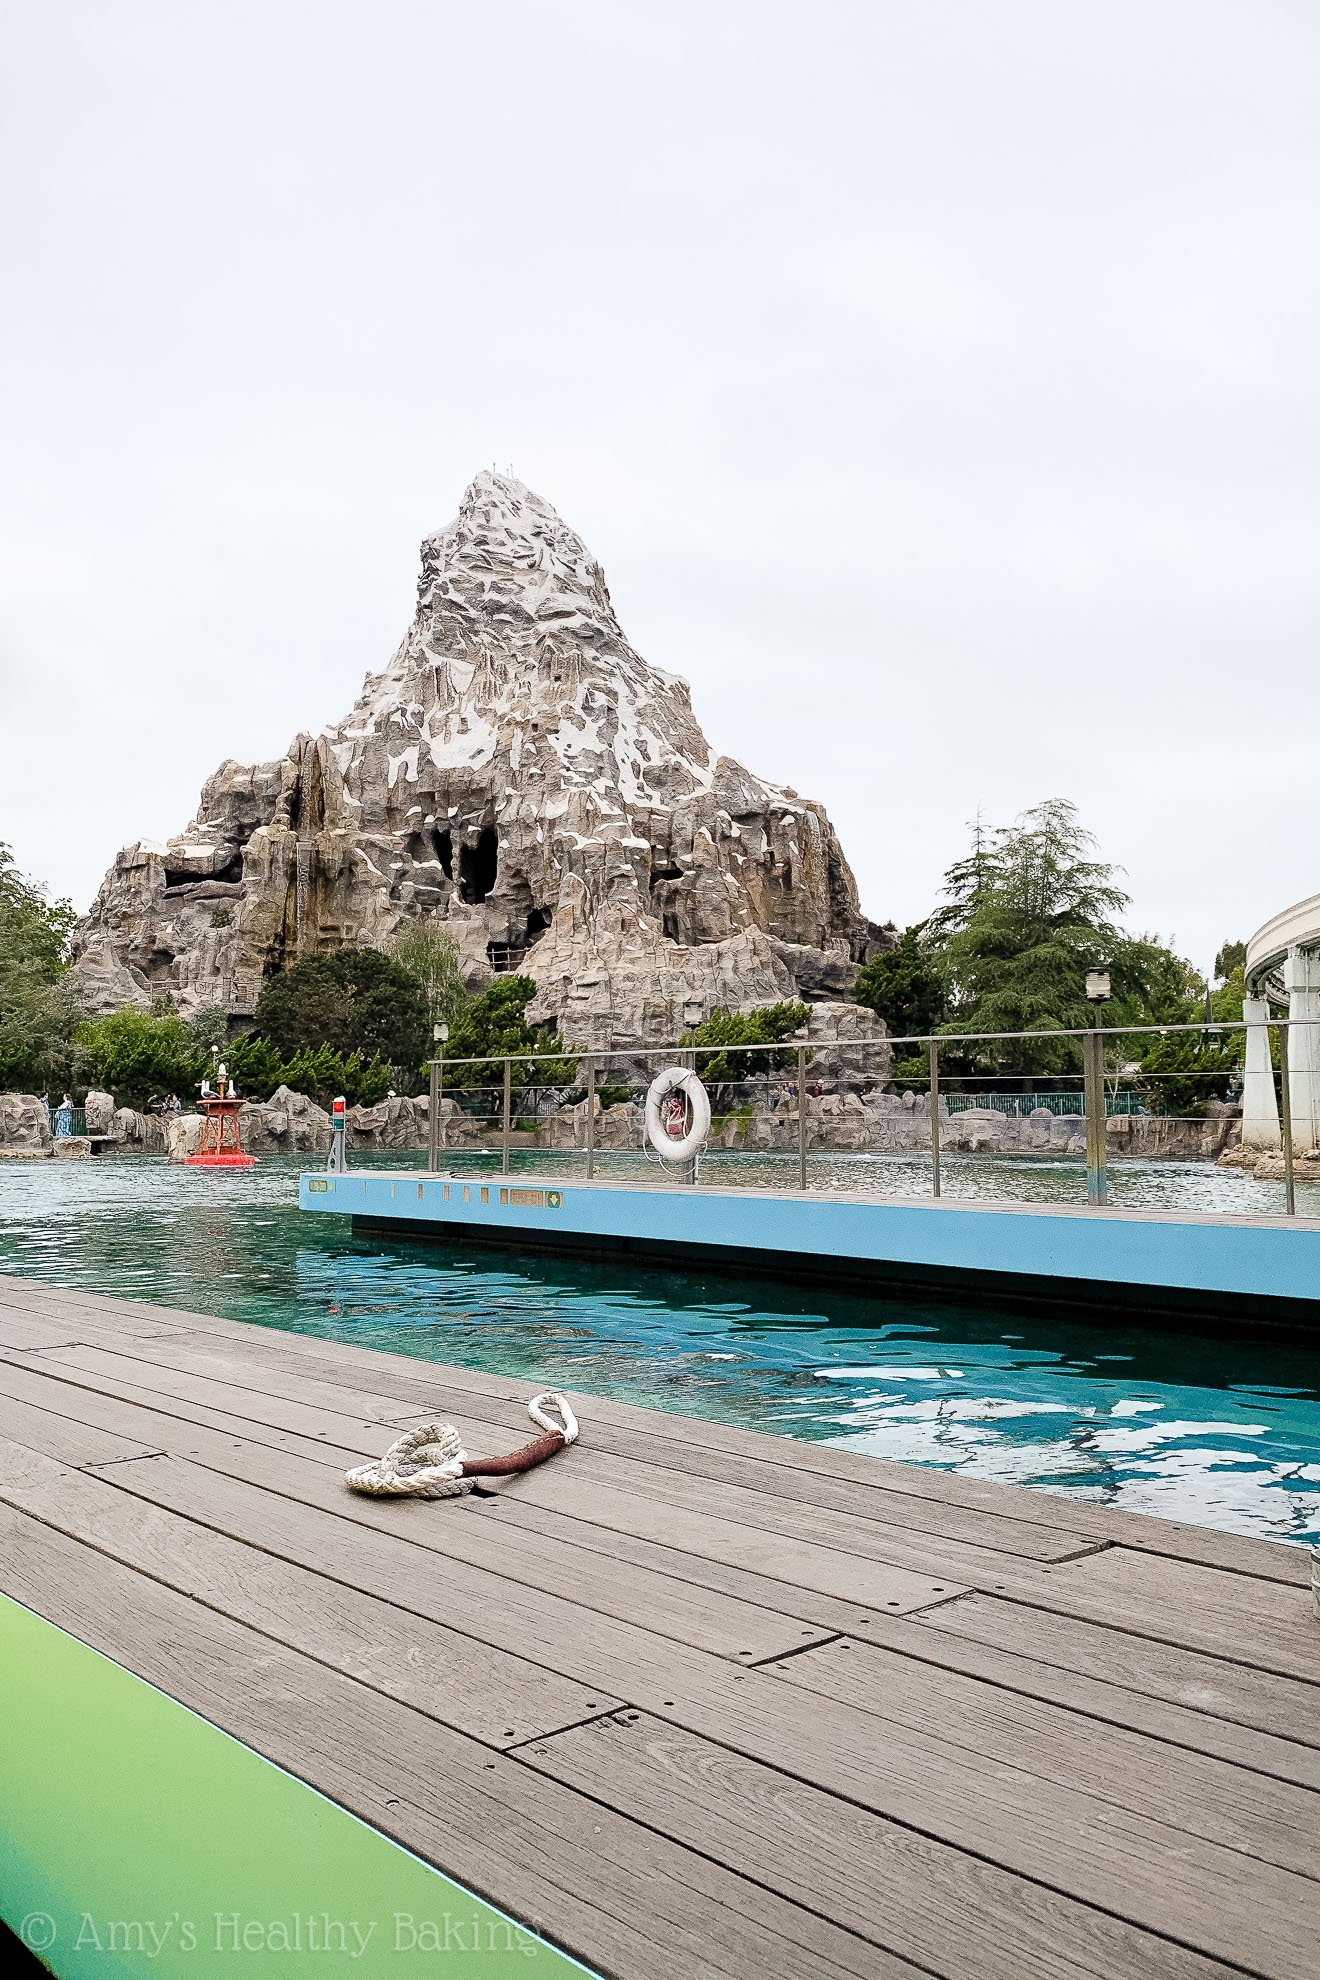 Matterhorn & Finding Nemo's submarine ride in Disneyland - Anaheim